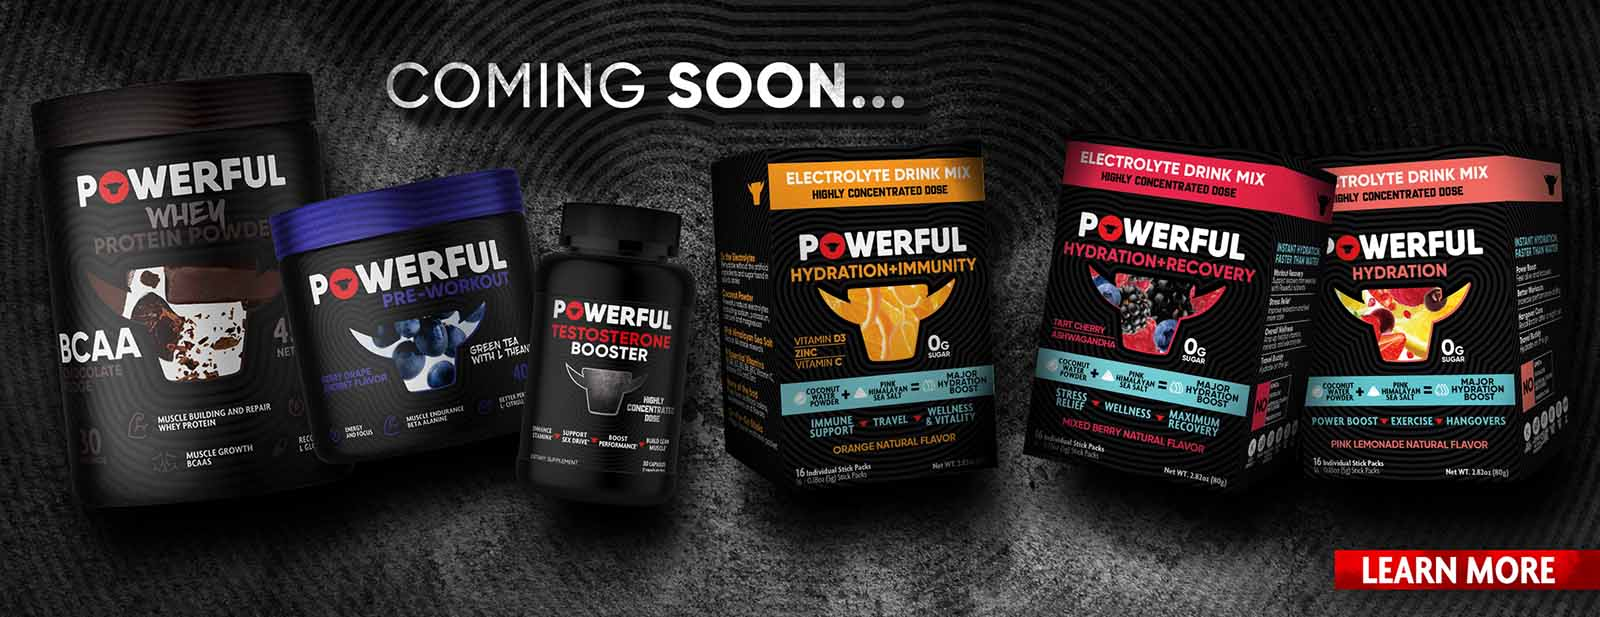 Powerful Nutrition has a new supplement coming out any man could use to help keep them fit and healthy. Here's why you need to try it.